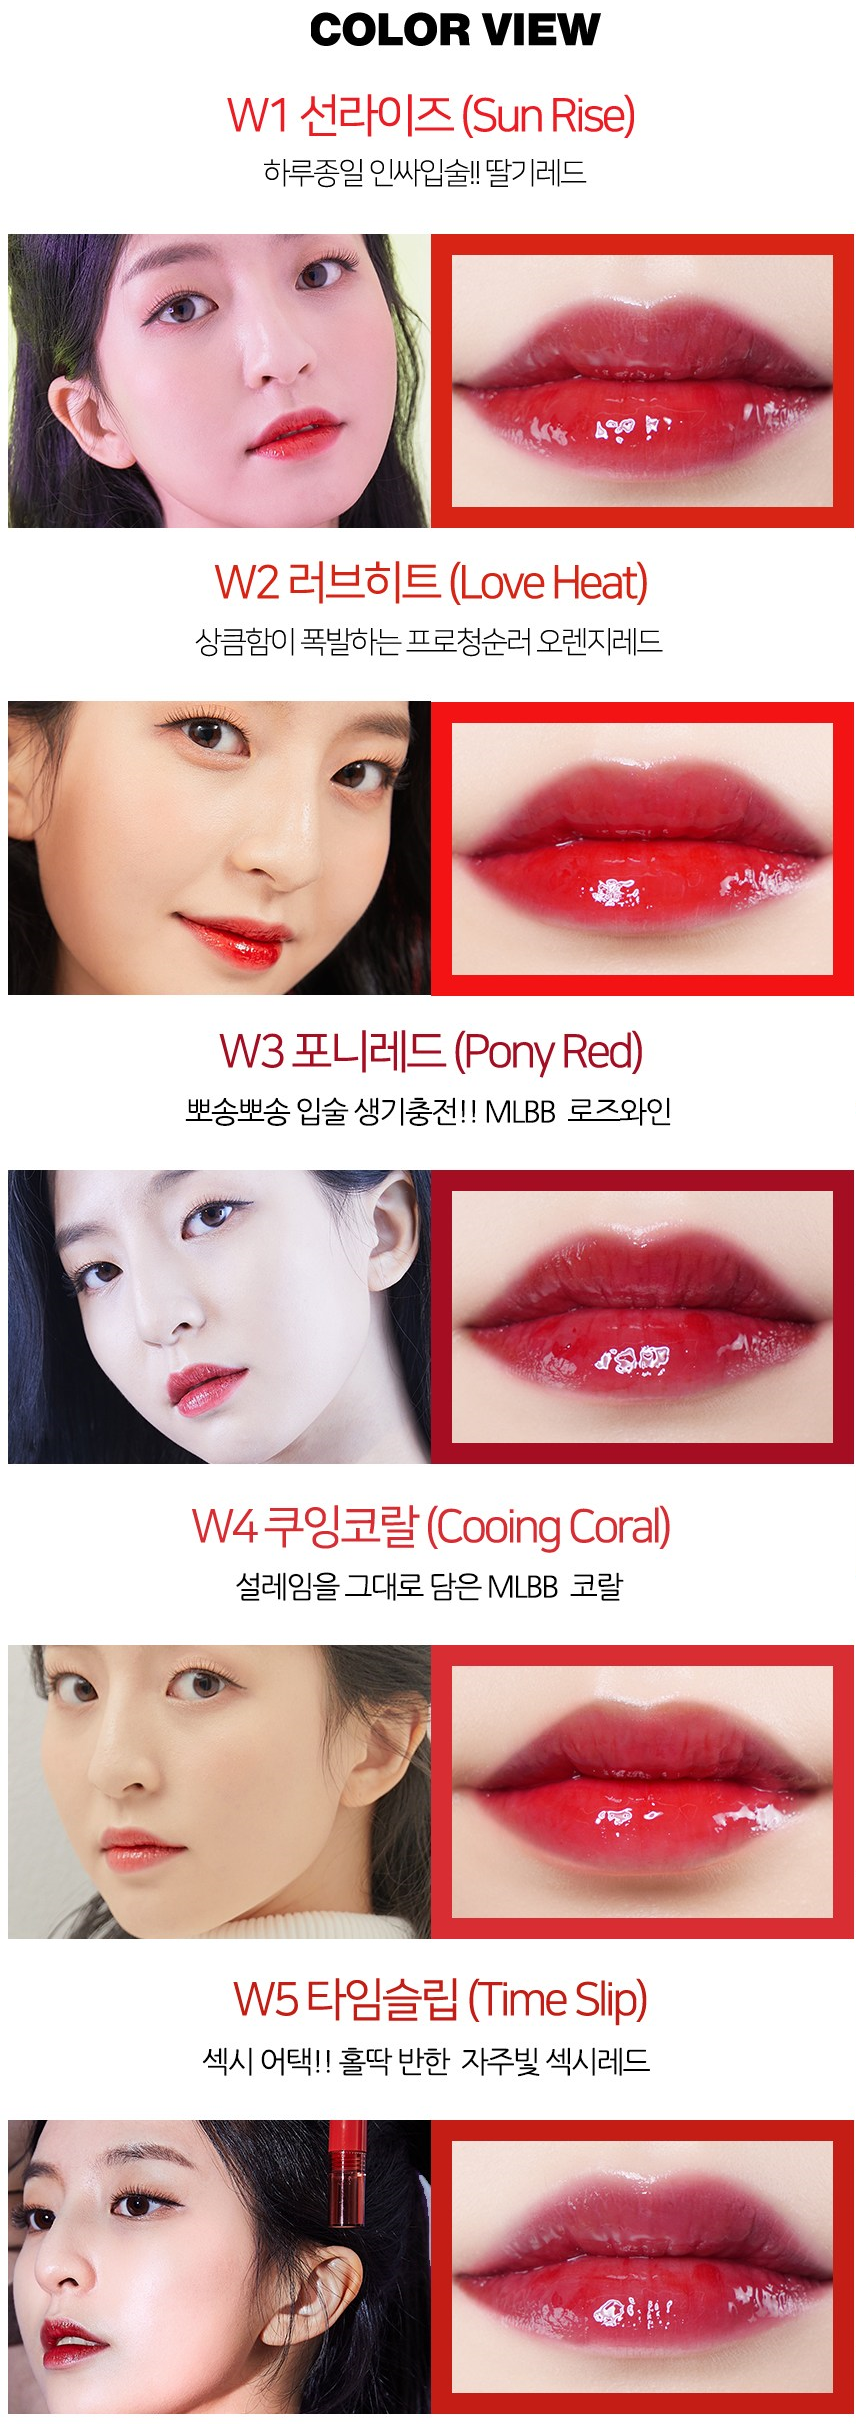 RED COOKIES Glow Water Wrap Tint